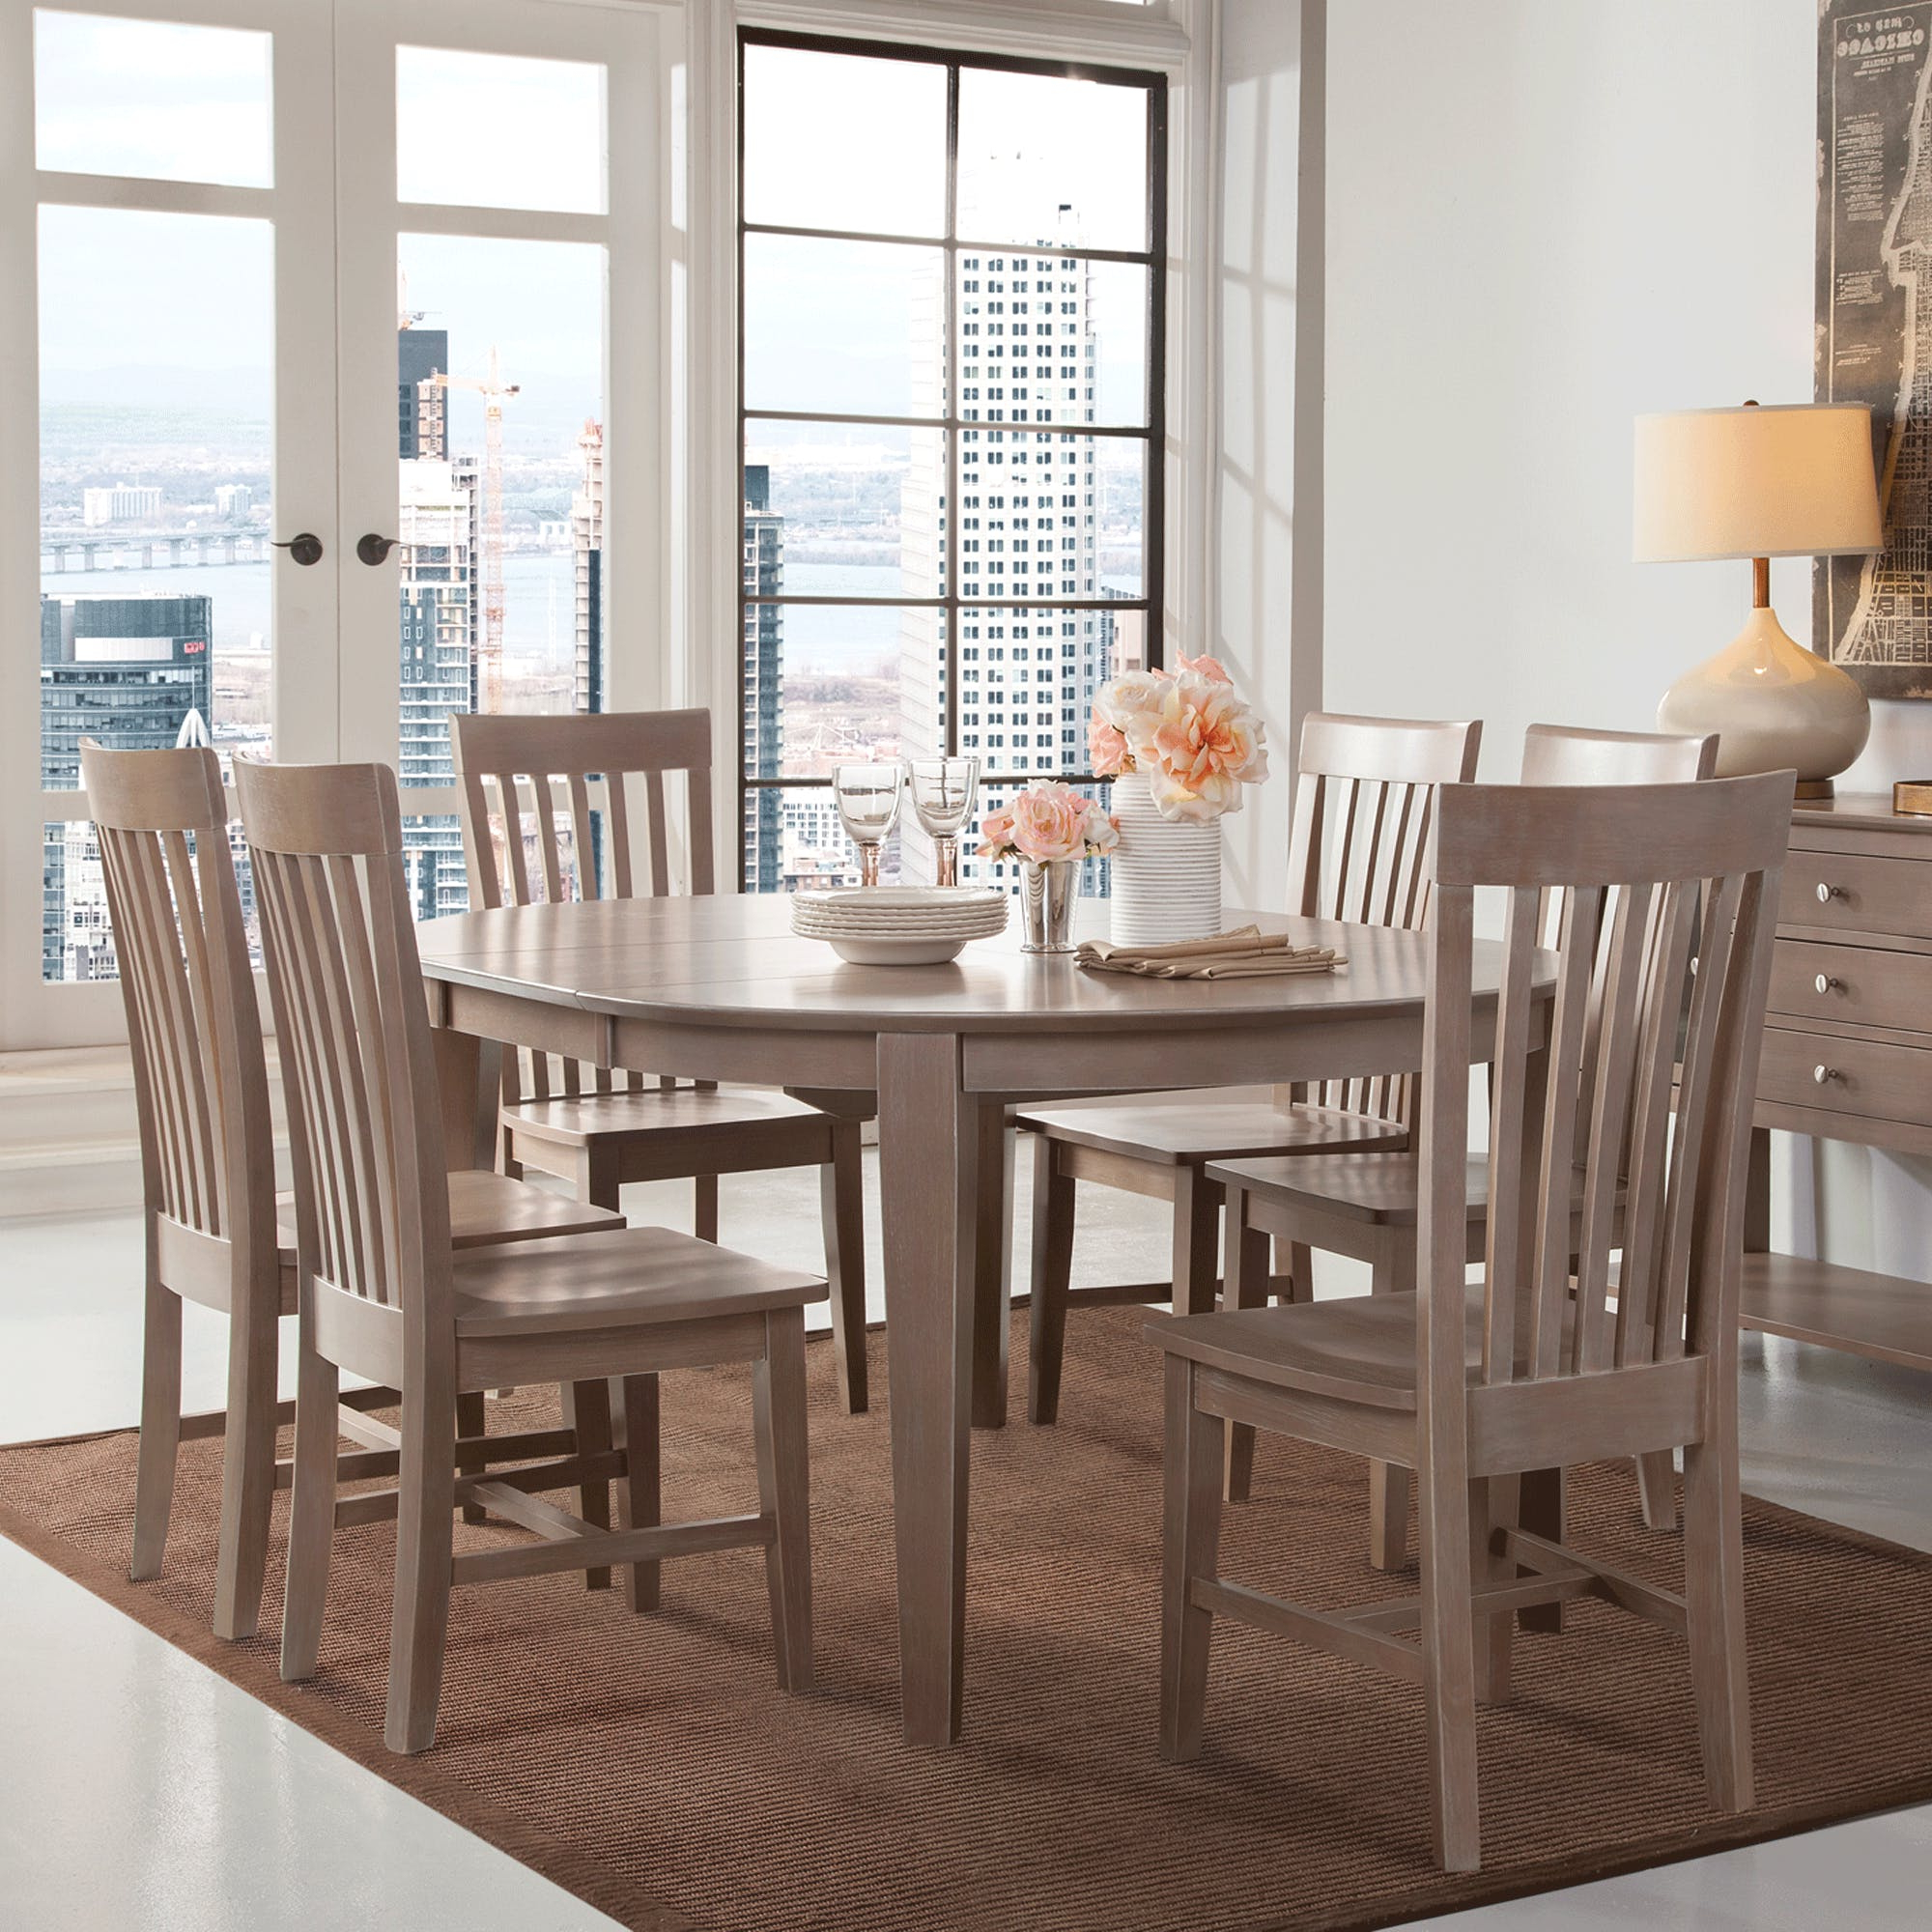 John 4 Piece Dining Sets Within Most Current Cosmopolitan Weathered Grey Dining Room 5 Piece Set – Oval Table (Gallery 3 of 25)